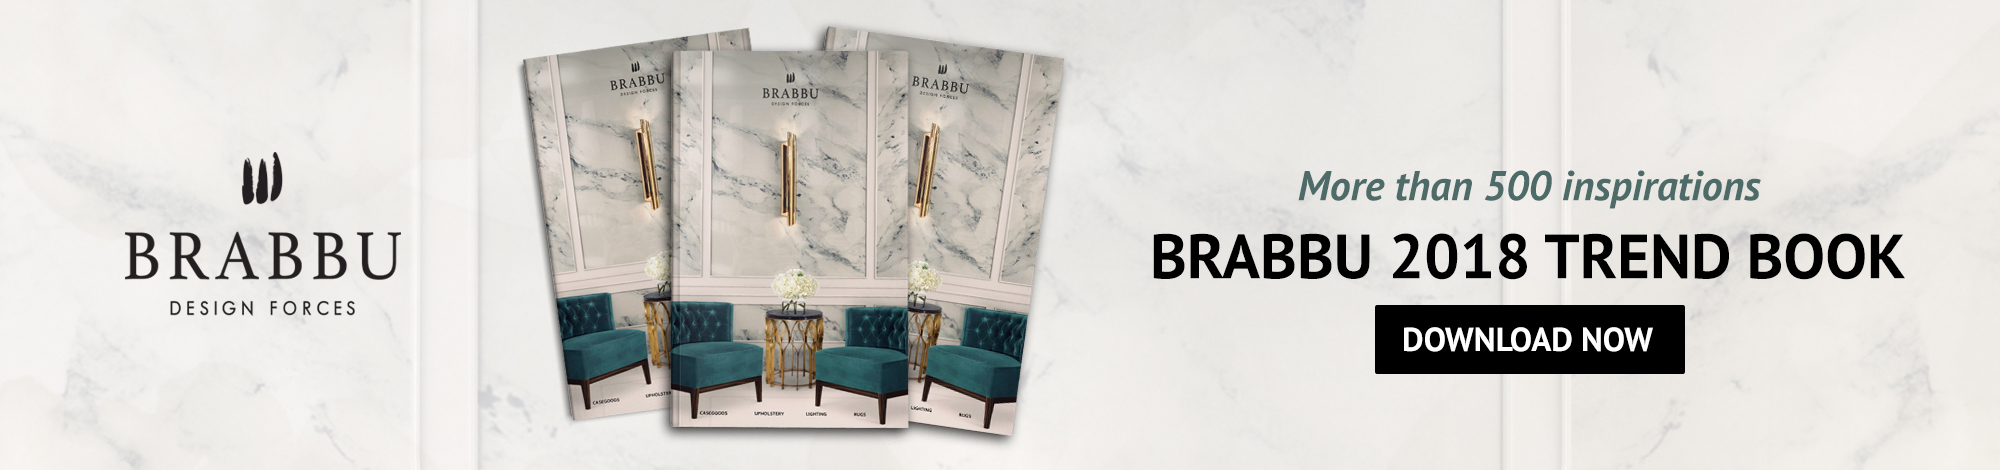 brabbu Get inspired by the most impressive interiors with BRABBU pieces  1C5EB82328DCFD5BD10428DB124BD945082C079483CACCDD2D pimgpsh fullsize distr 2